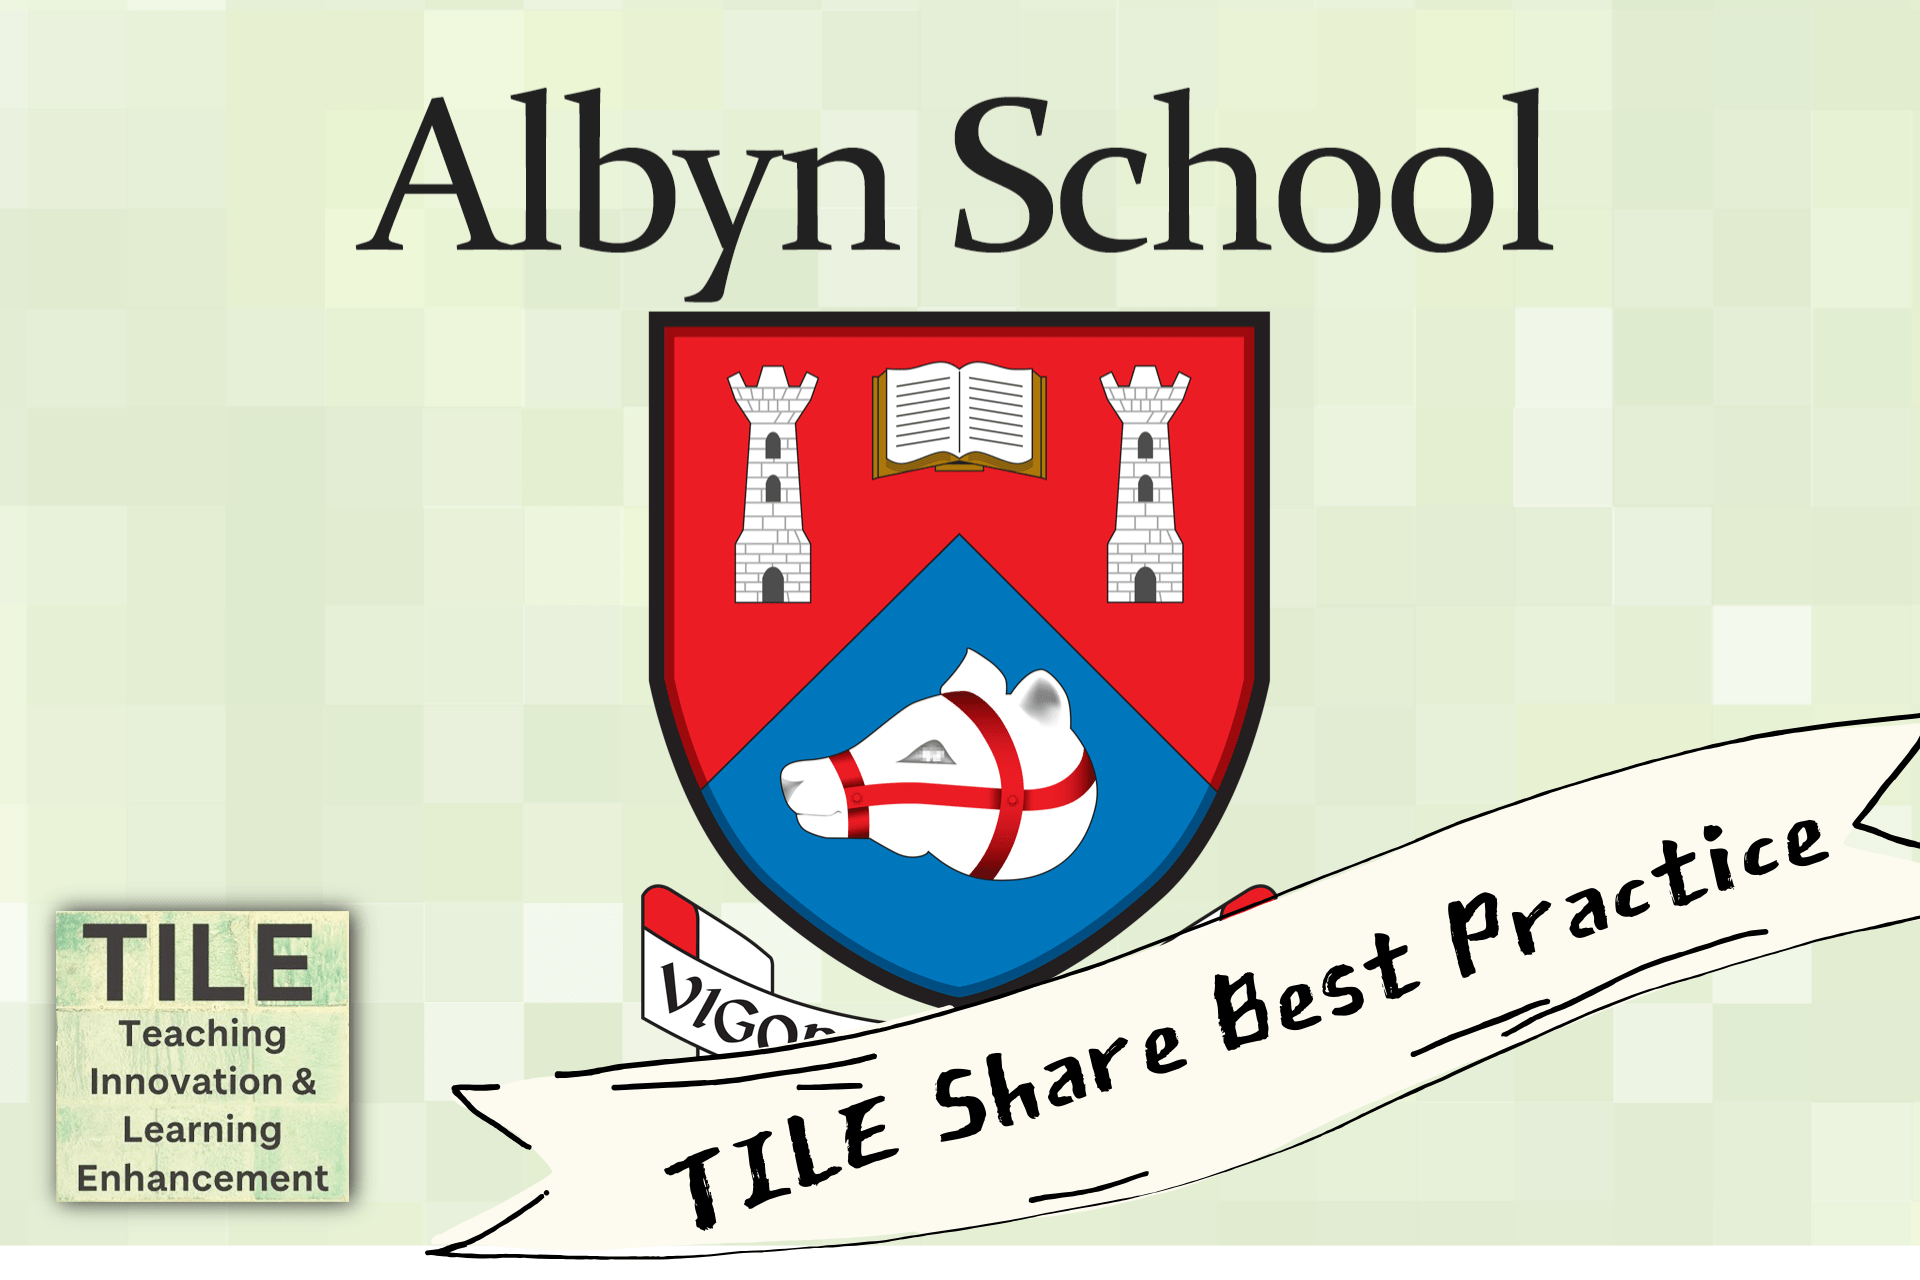 TILE Share Best Practice: Albyn School